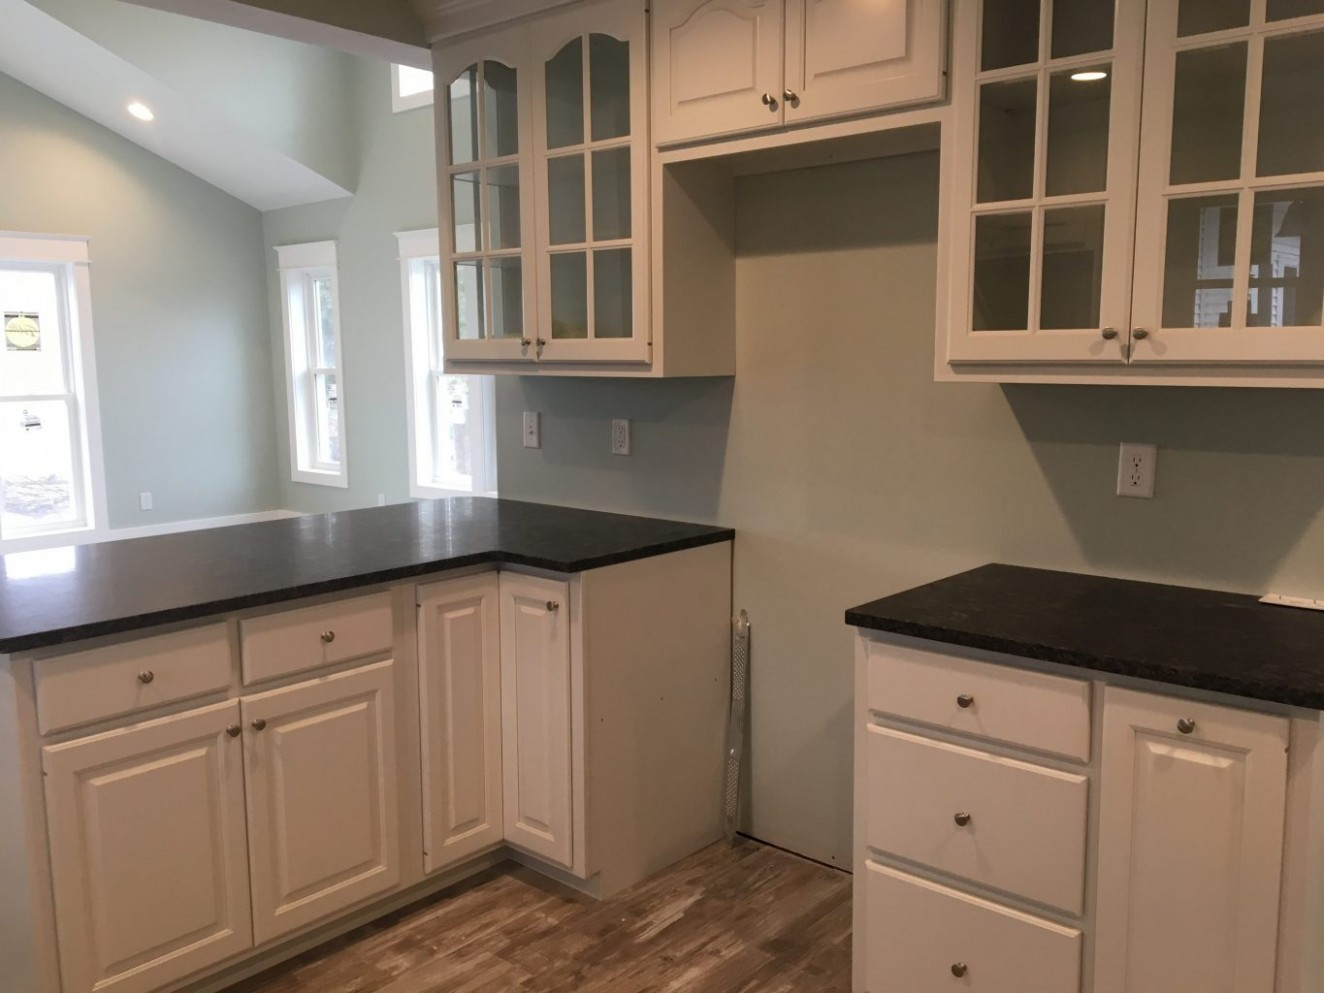 Grand Rapids Kitchen Remodeling  Amber Valley Construction - Kitchen Cabinets Grand Haven Mi